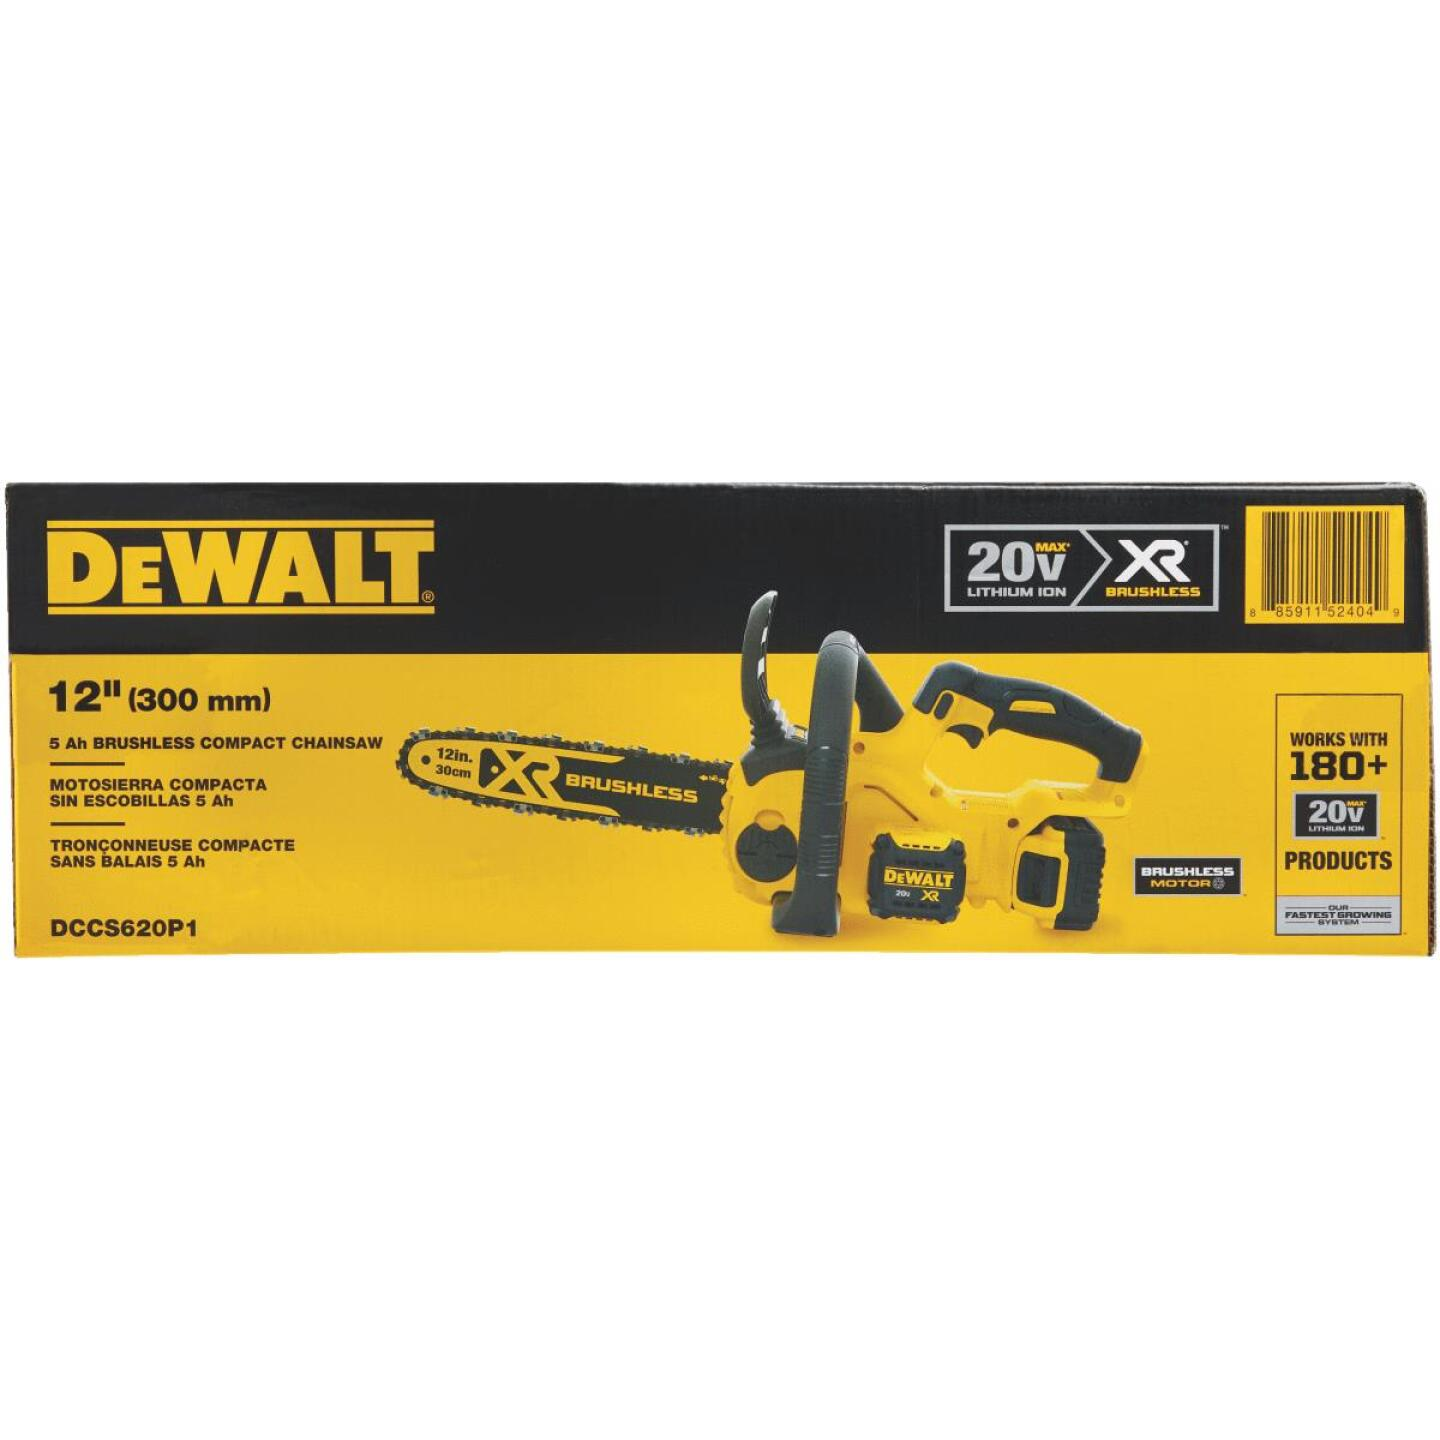 DeWalt 12 In. 20V MAX Lithium-Ion Brushless Cordless Chainsaw Image 2